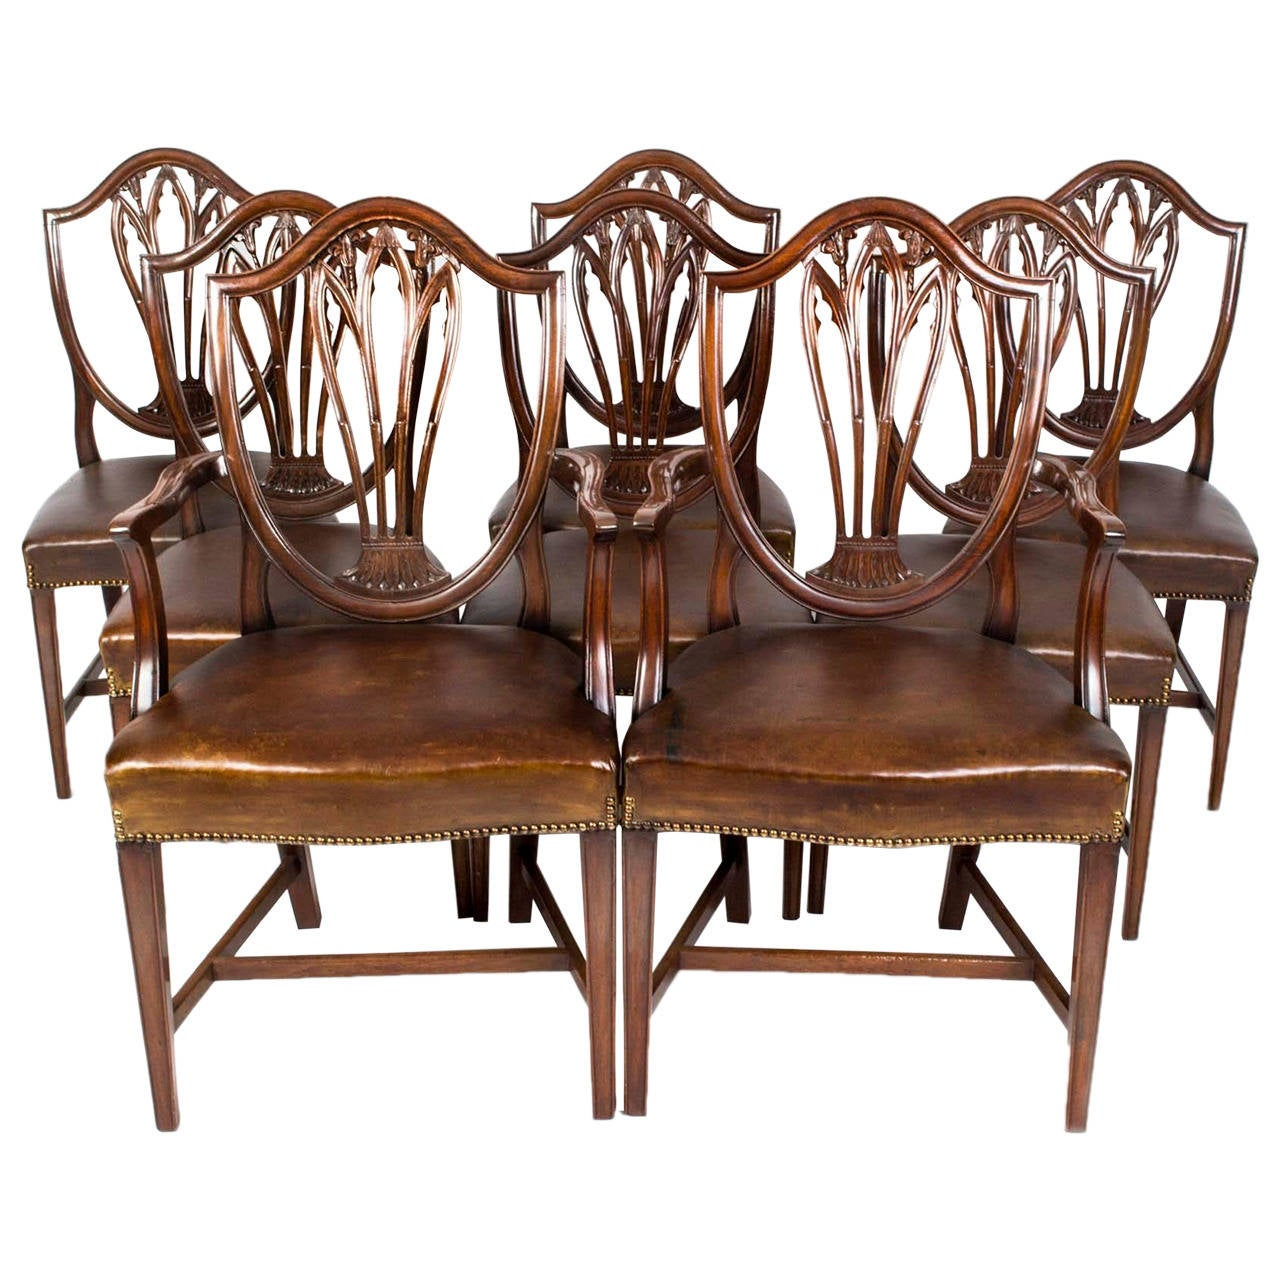 Antique Set 8 English Hepplewhite Dining Chairs C 1900 At 1stdibs